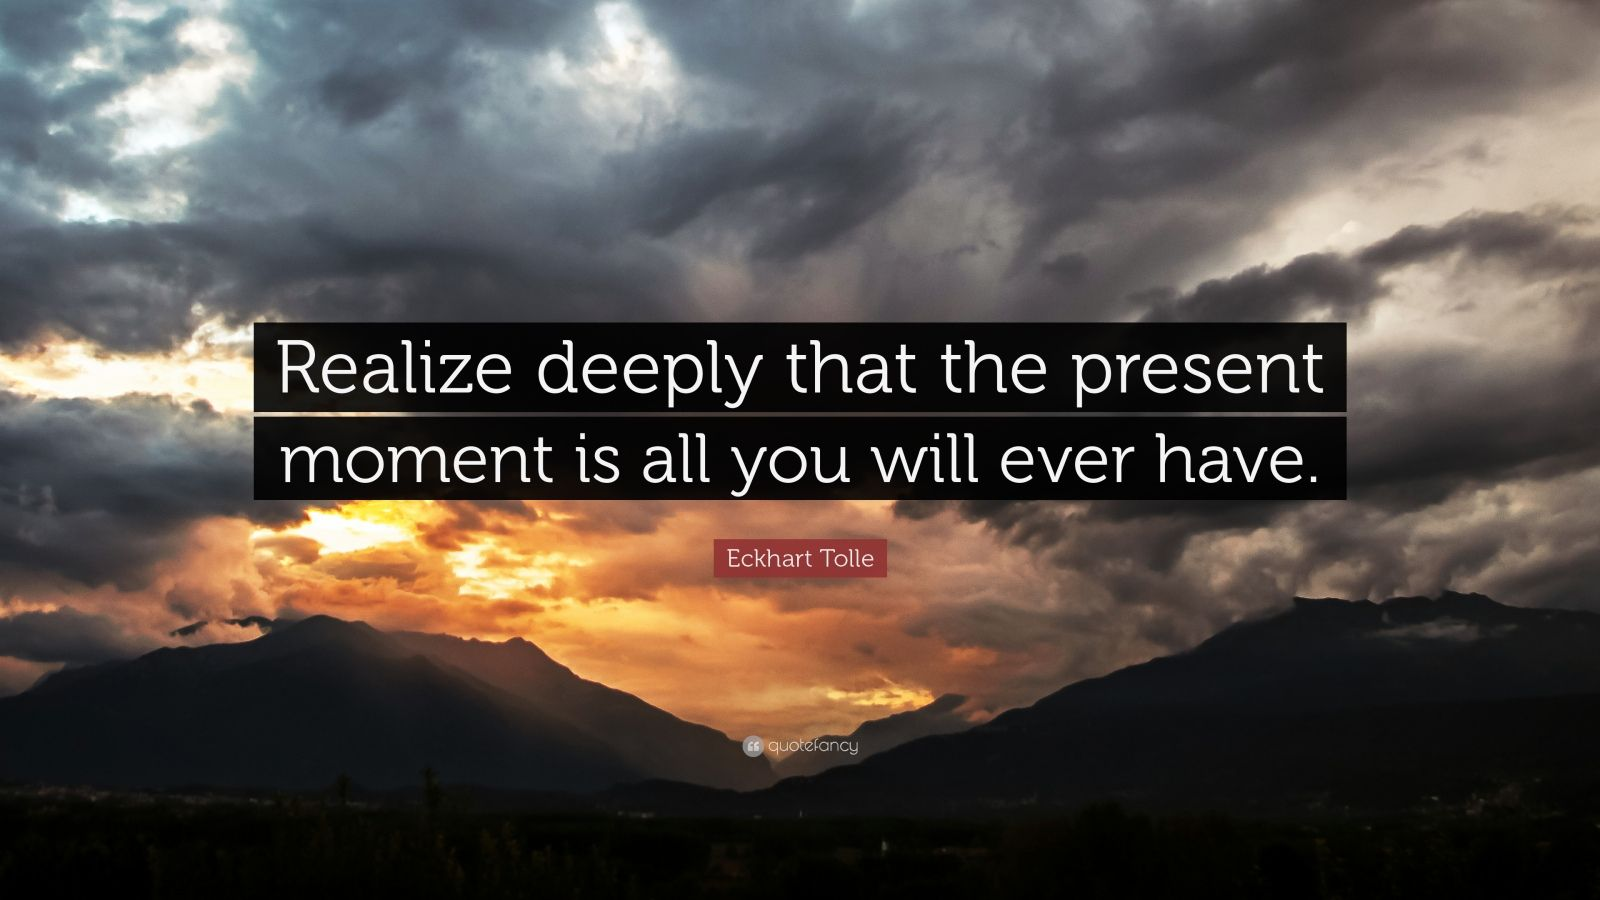 """Eckhart Tolle Quote: """"Realize deeply that the present moment is all you will ever have."""""""